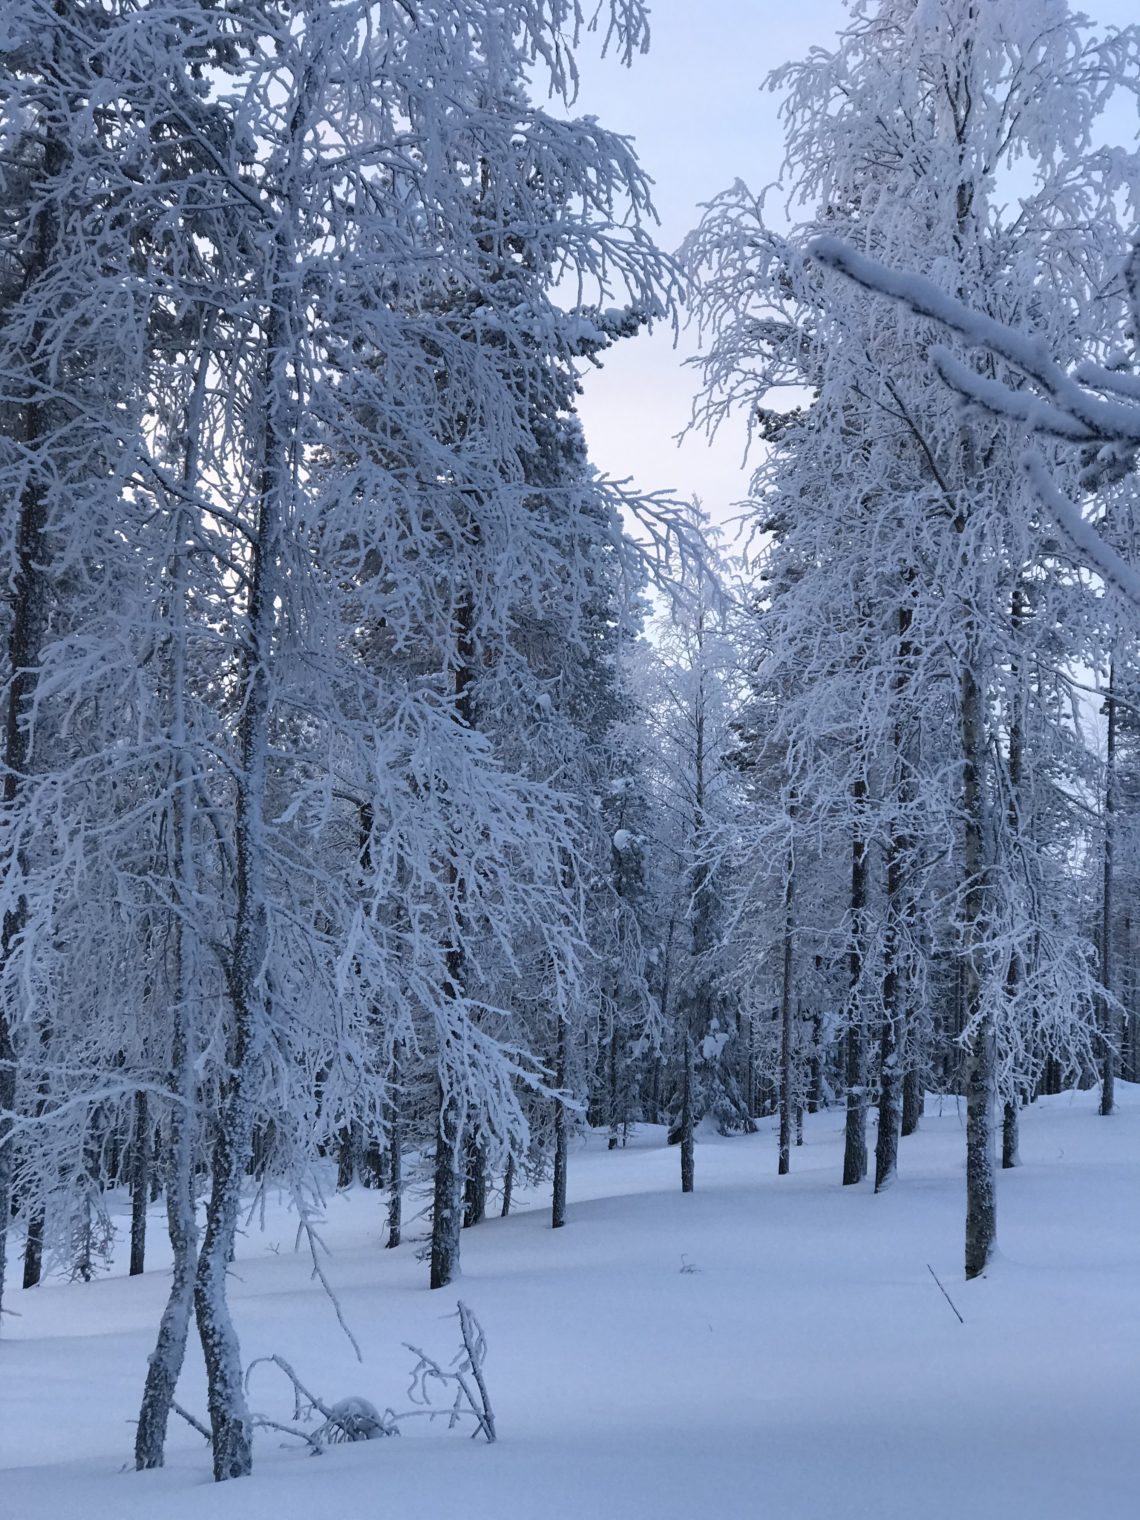 Levi, Finland, snow, holiday, travel, trees, winter, ski